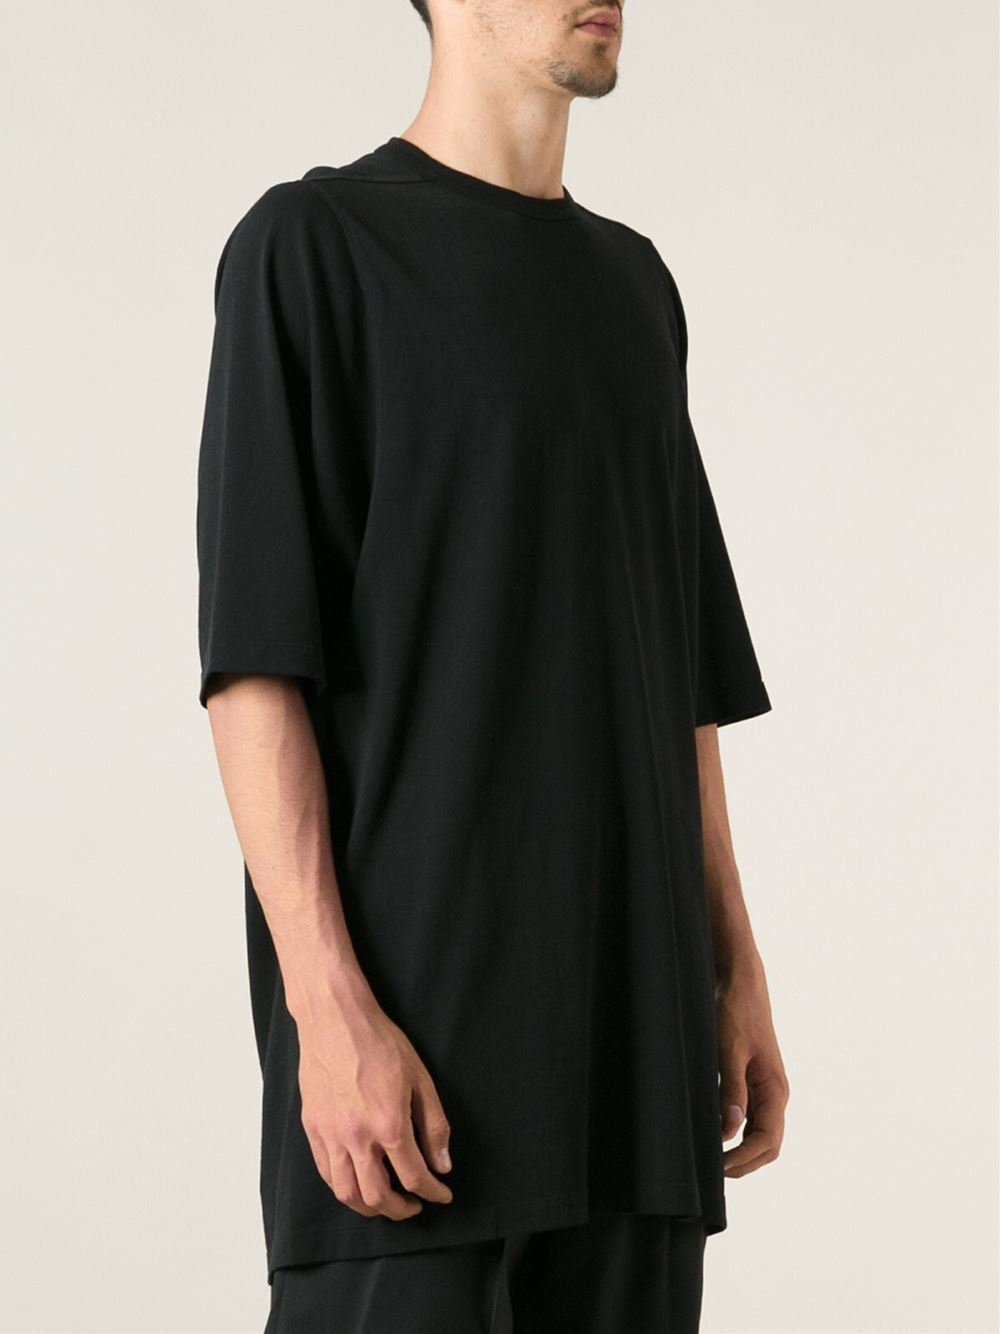 Find great deals on eBay for loose fitting t shirts. Shop with confidence.